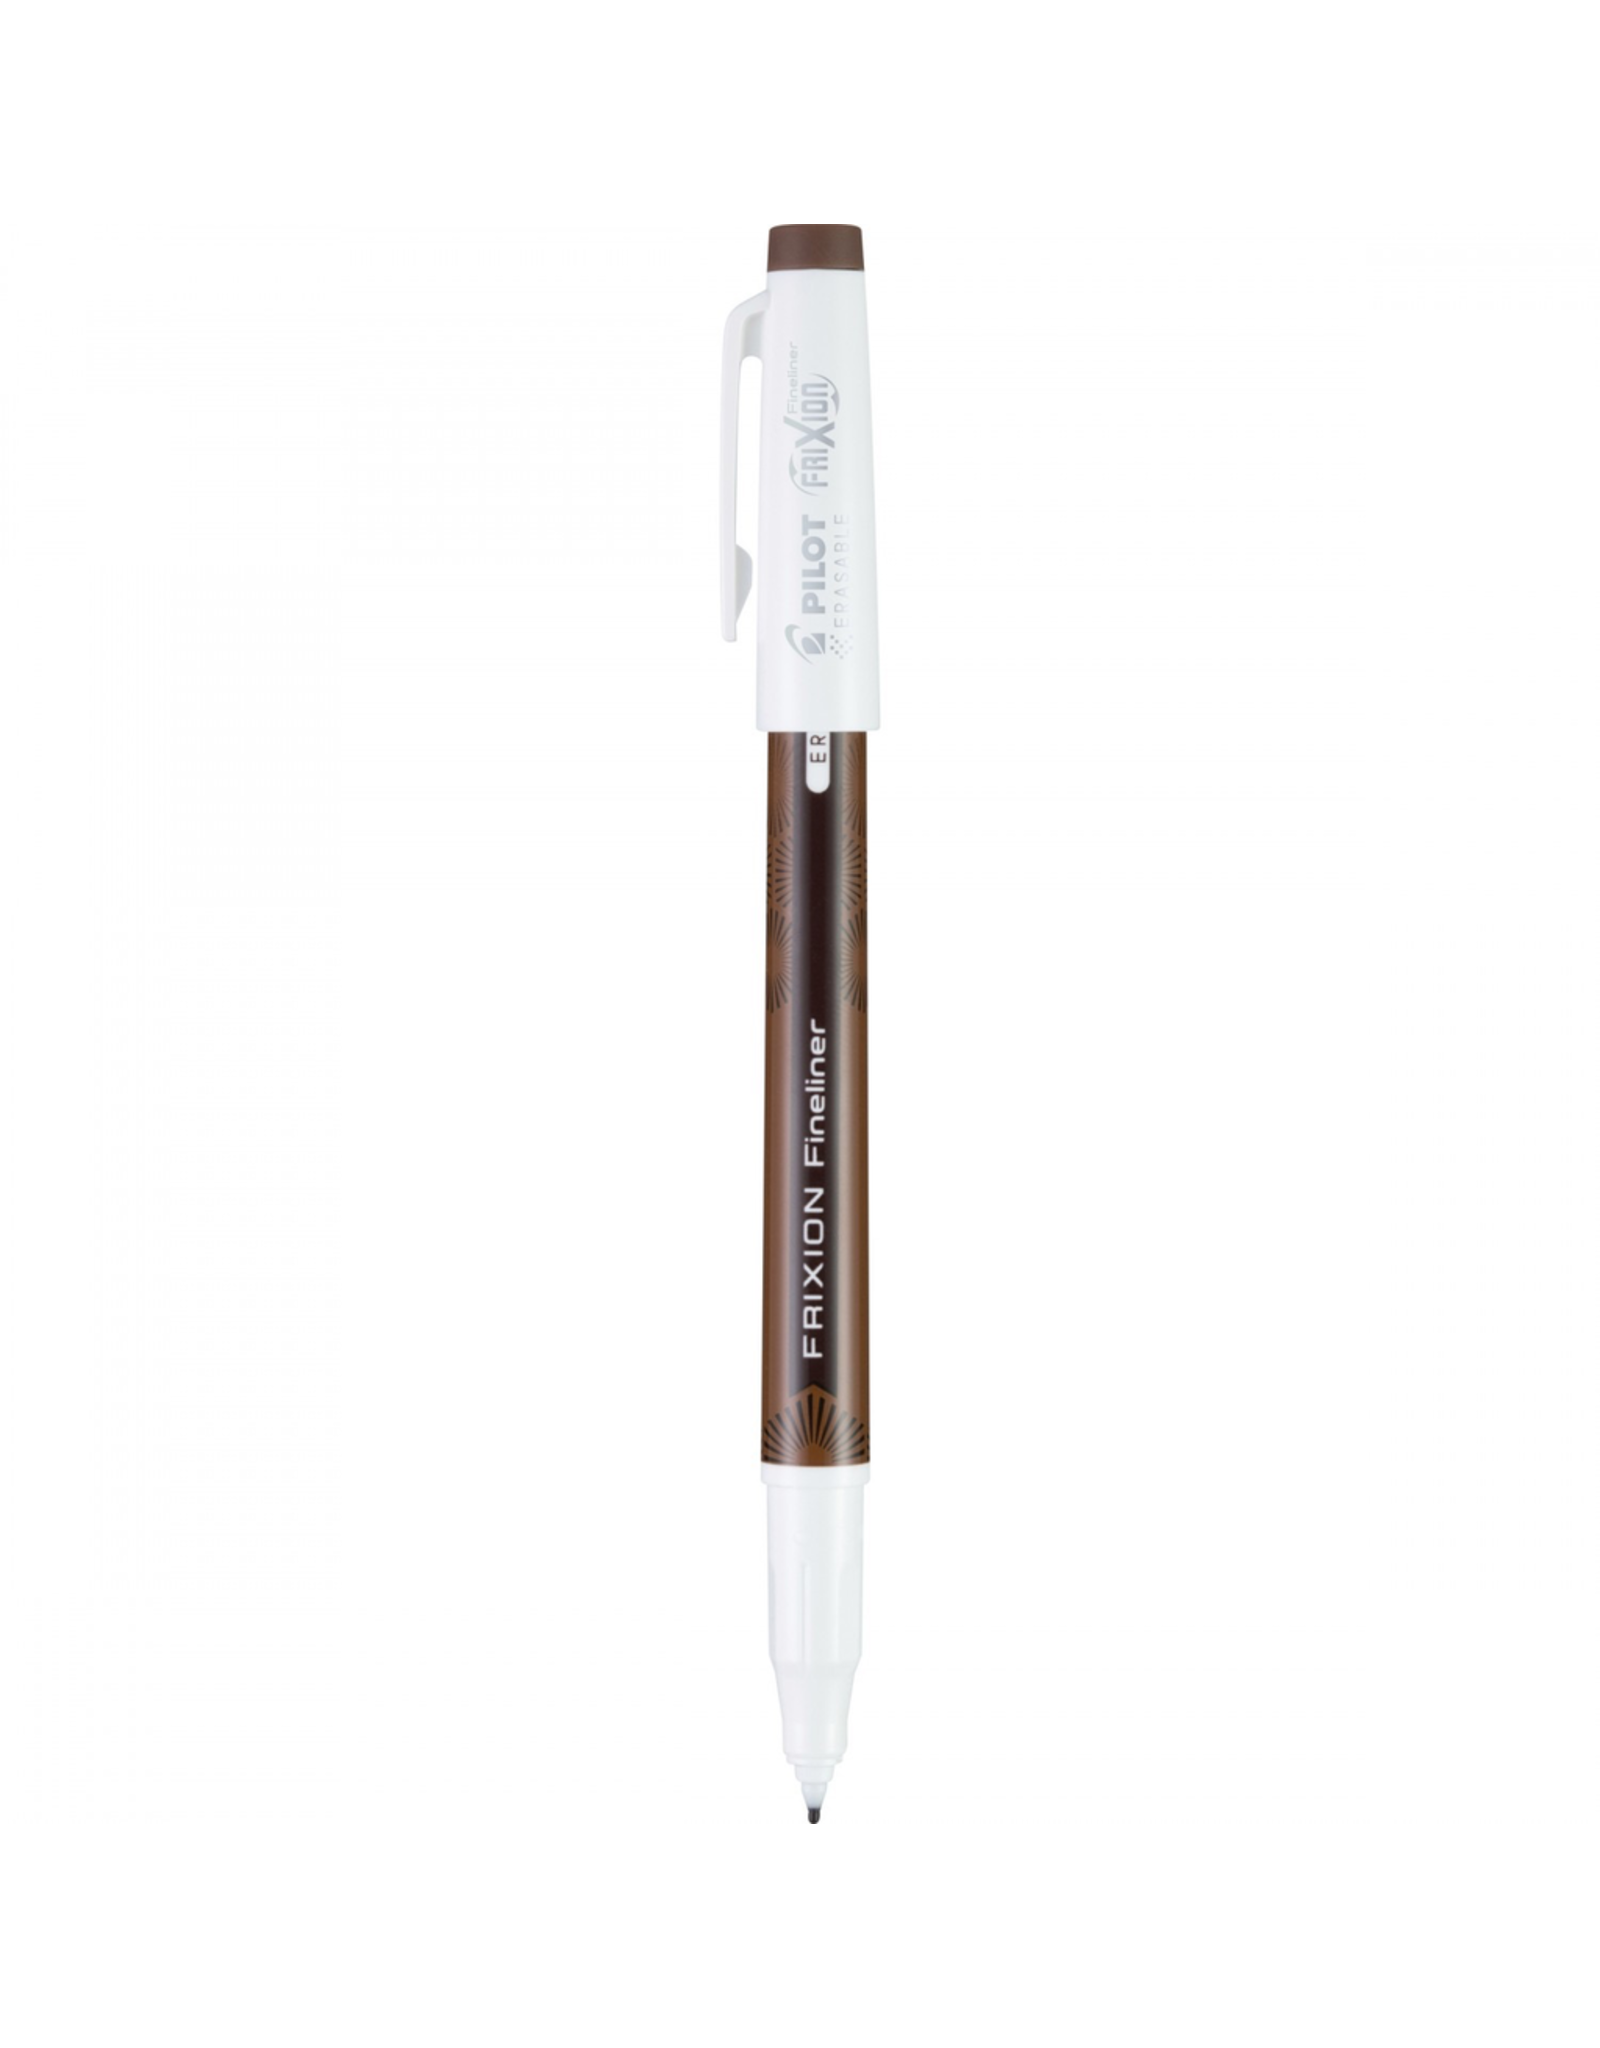 Frixion Fineliner Erasable Pen in Brown